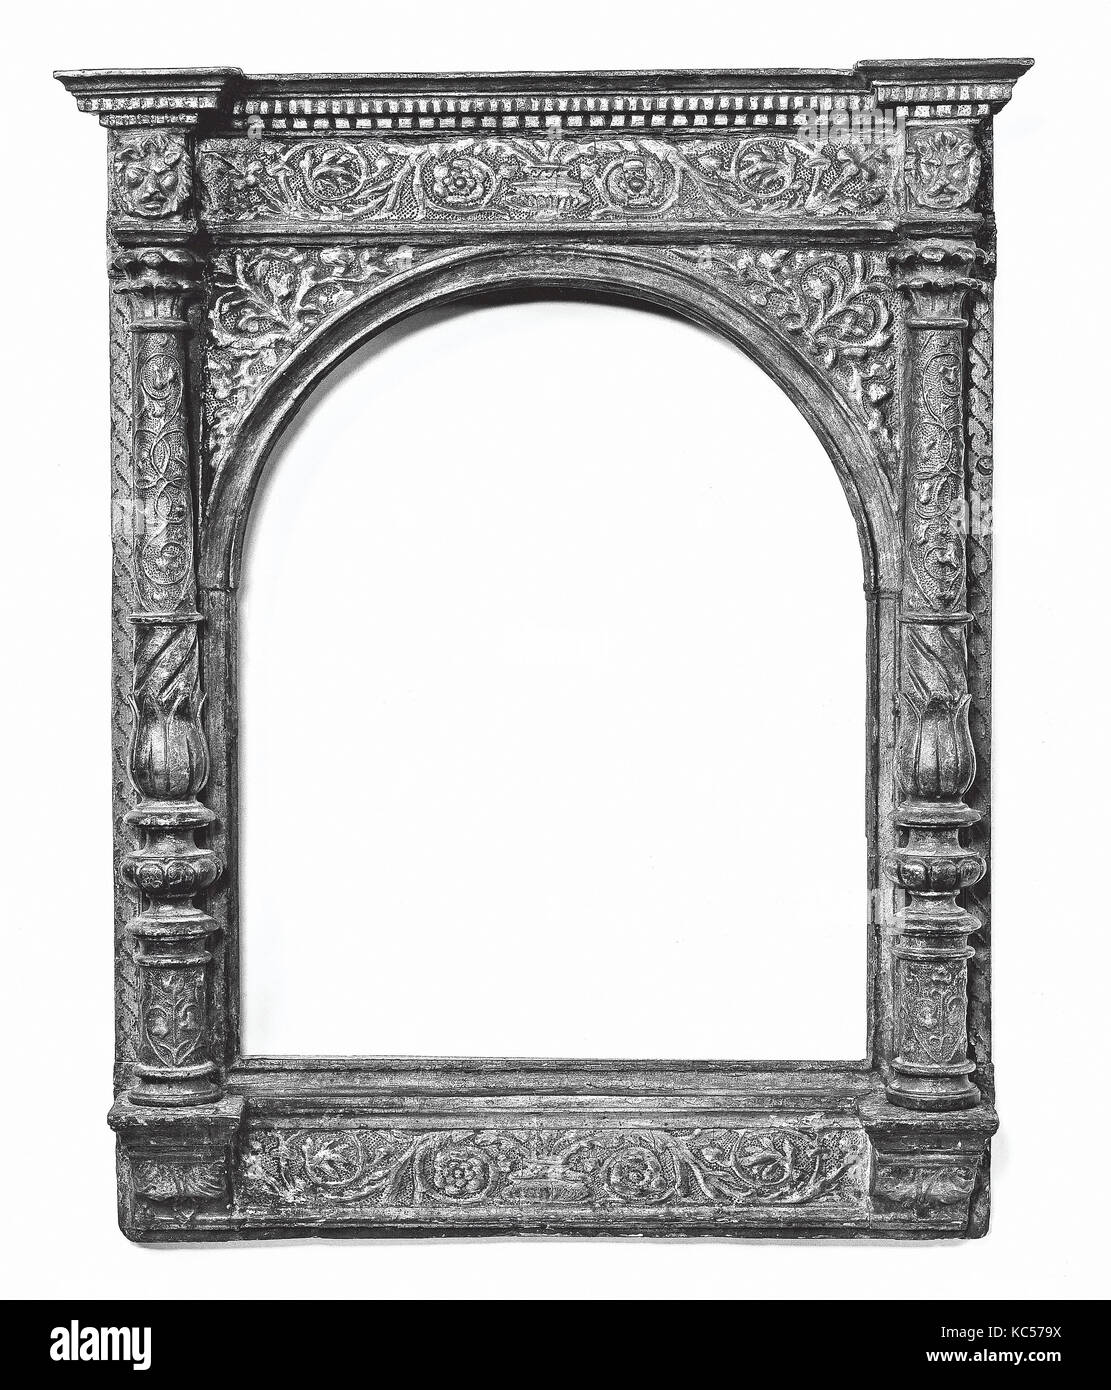 Tabernacle Frame Stock Photos & Tabernacle Frame Stock Images - Alamy